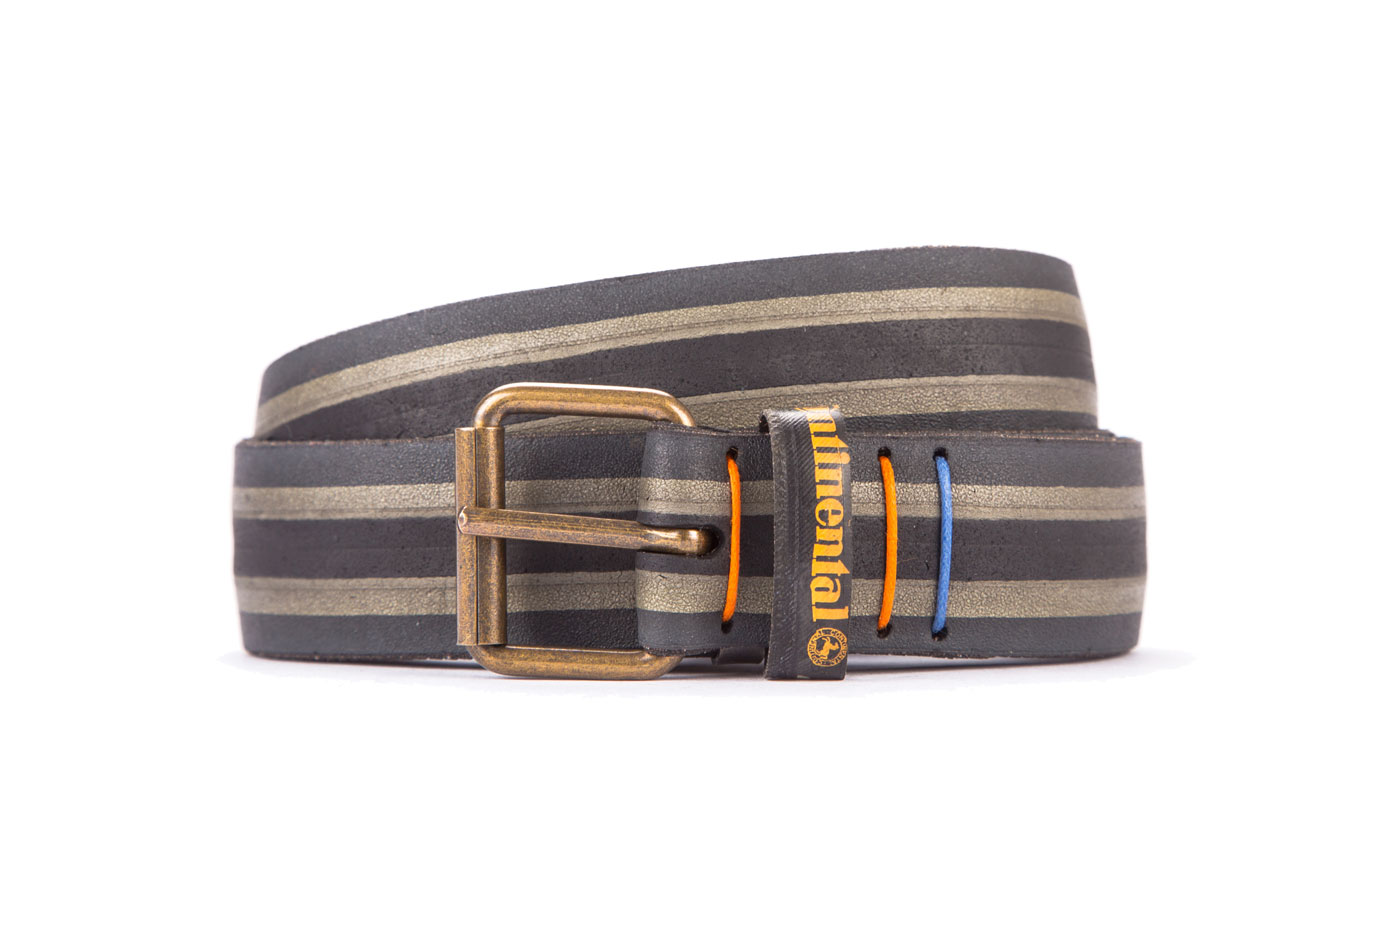 #2793 Coloured belt from a spare race bicycle tyre